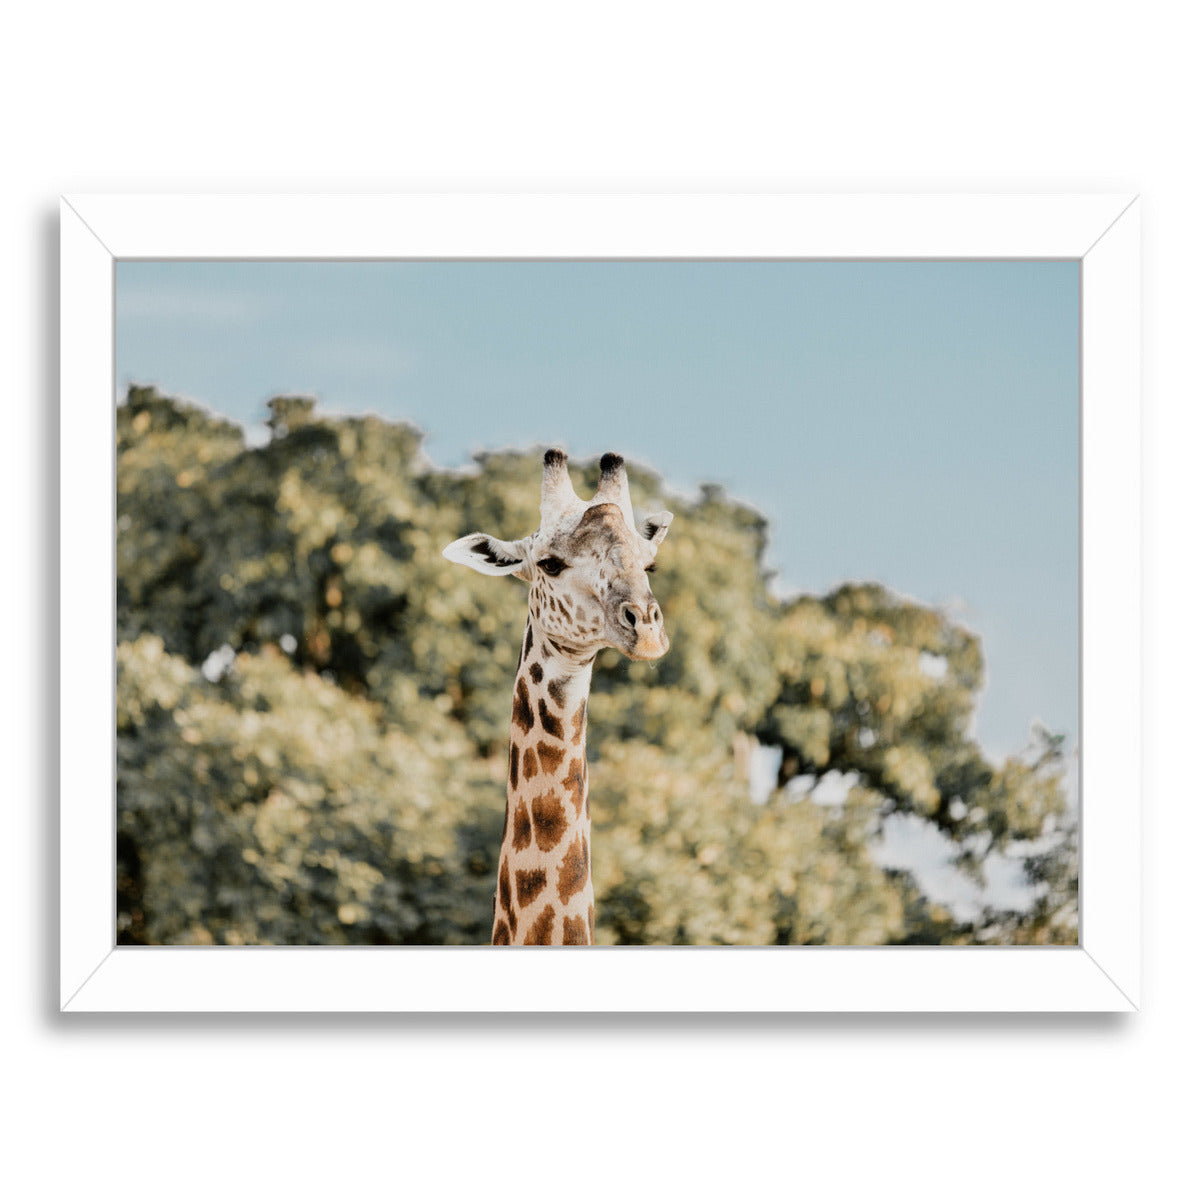 Zambia By Natalie Allen - White Framed Print - Wall Art - Americanflat